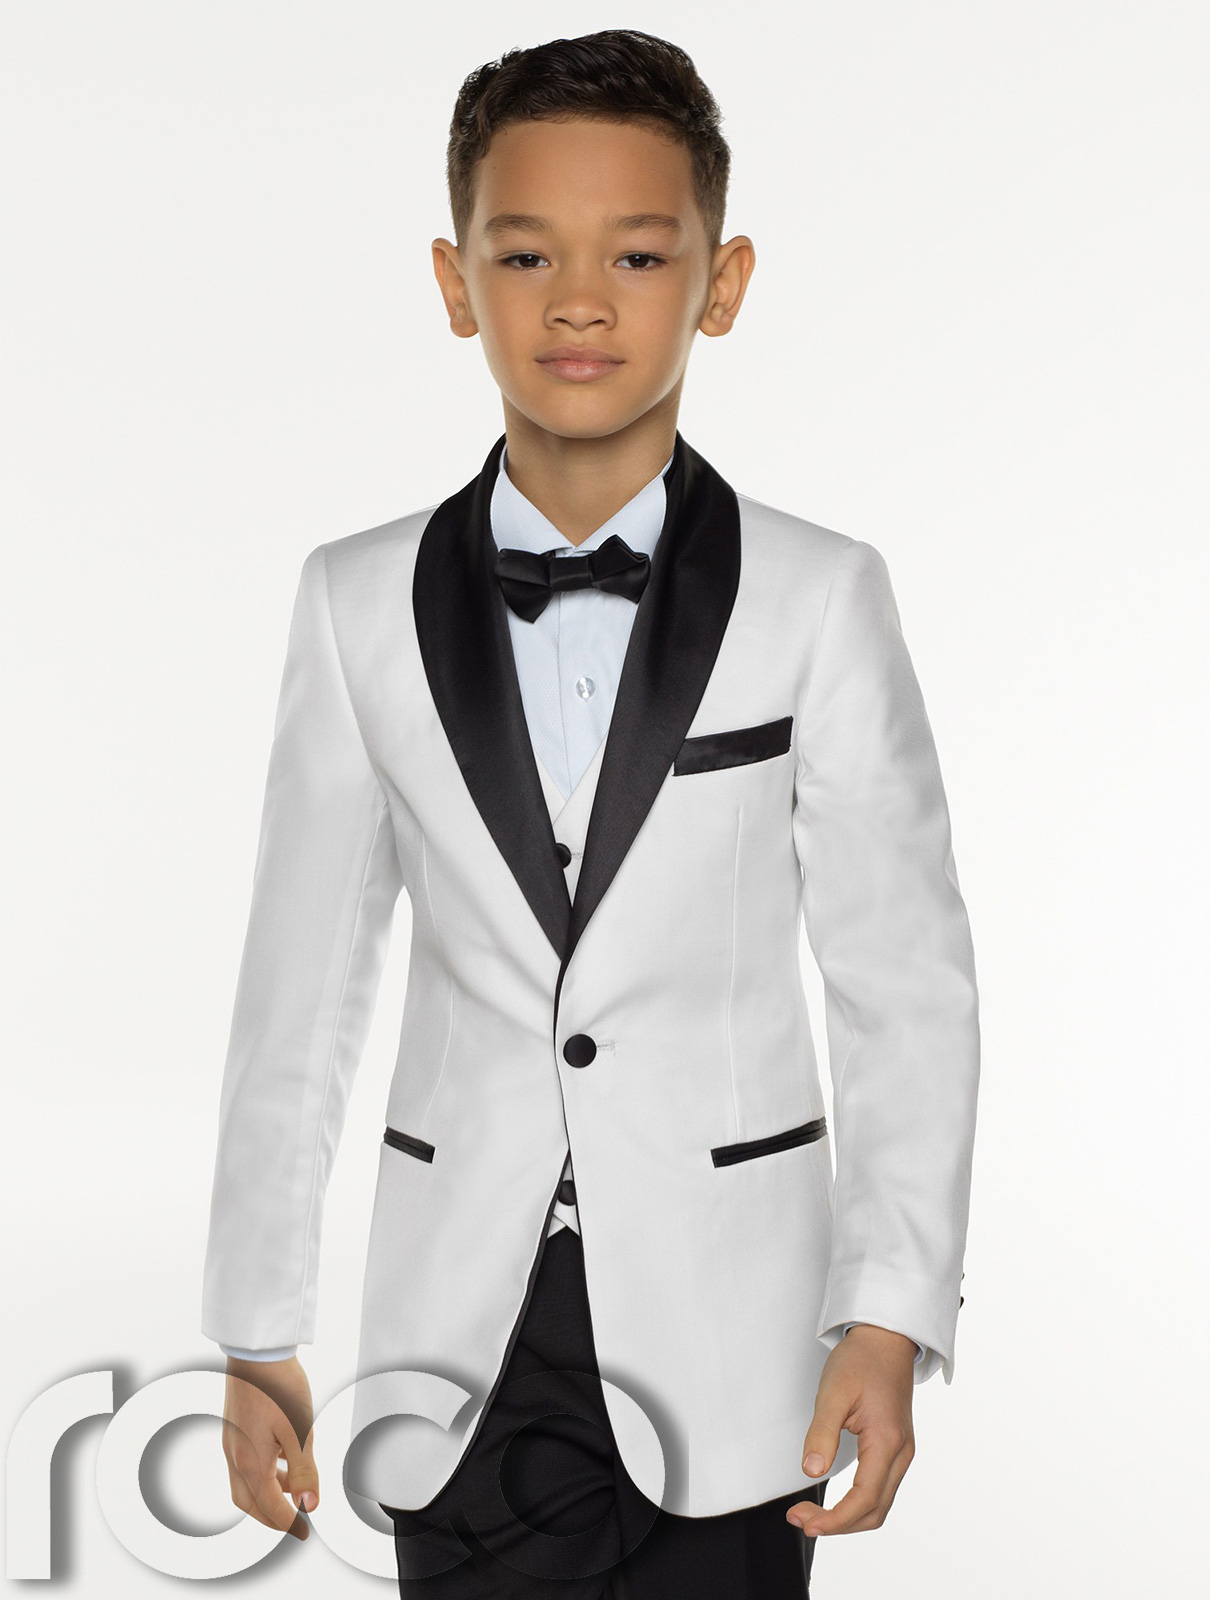 boys white tie photo - 1